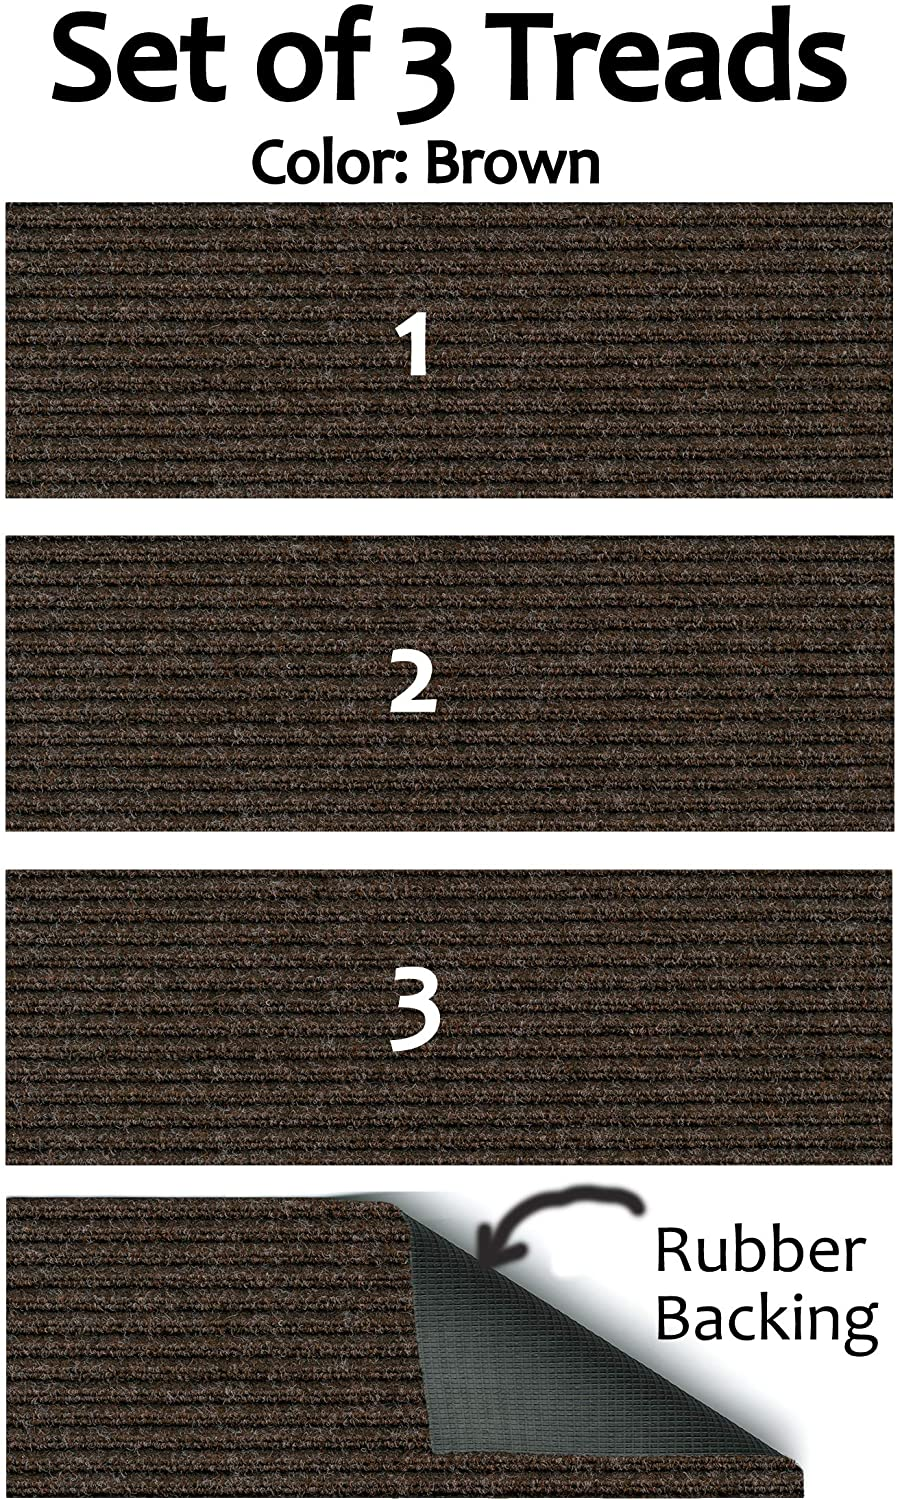 Set Of 3 Rubber Backed Non Slip 1 4 Thick Heavy Duty Indoor Outdoor Carpet Stair Treads Many Sizes Available Color Brown Walmart Com Walmart Com